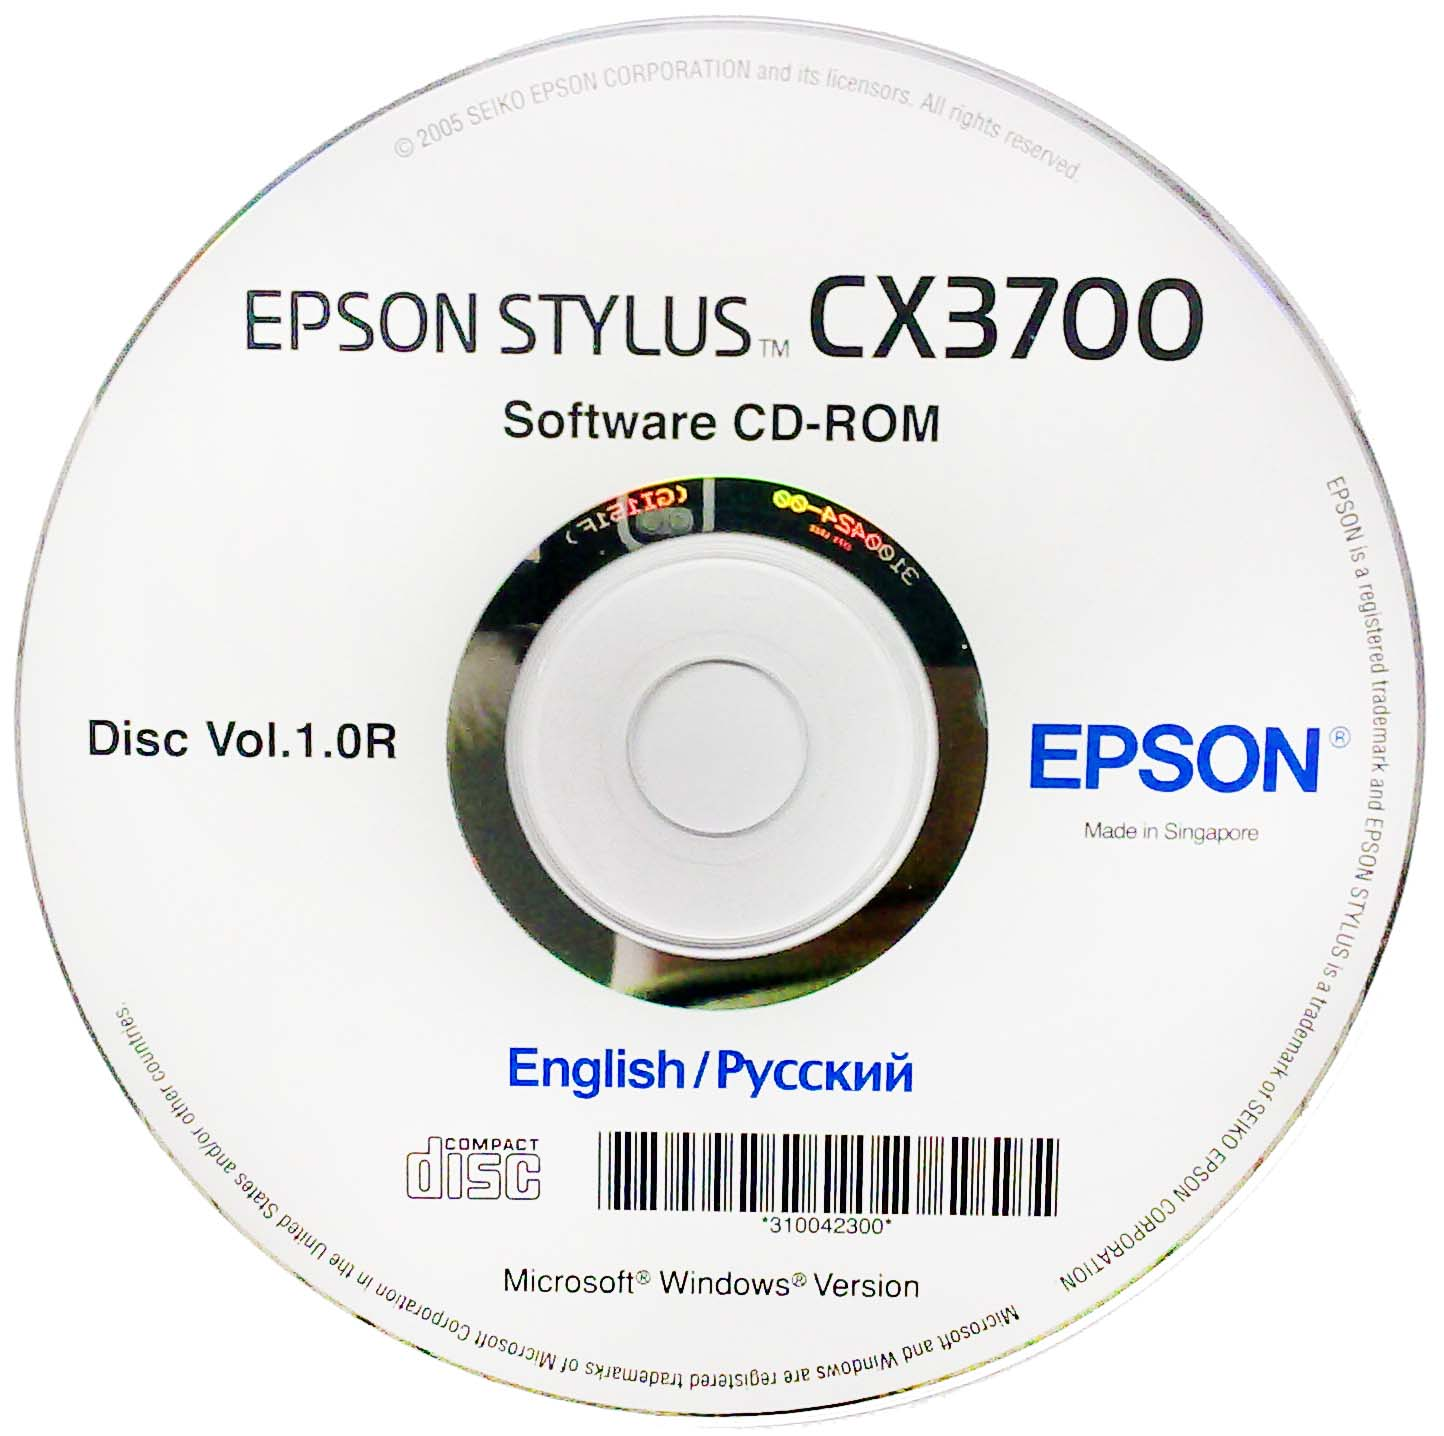 Epson r300 adjustment program download